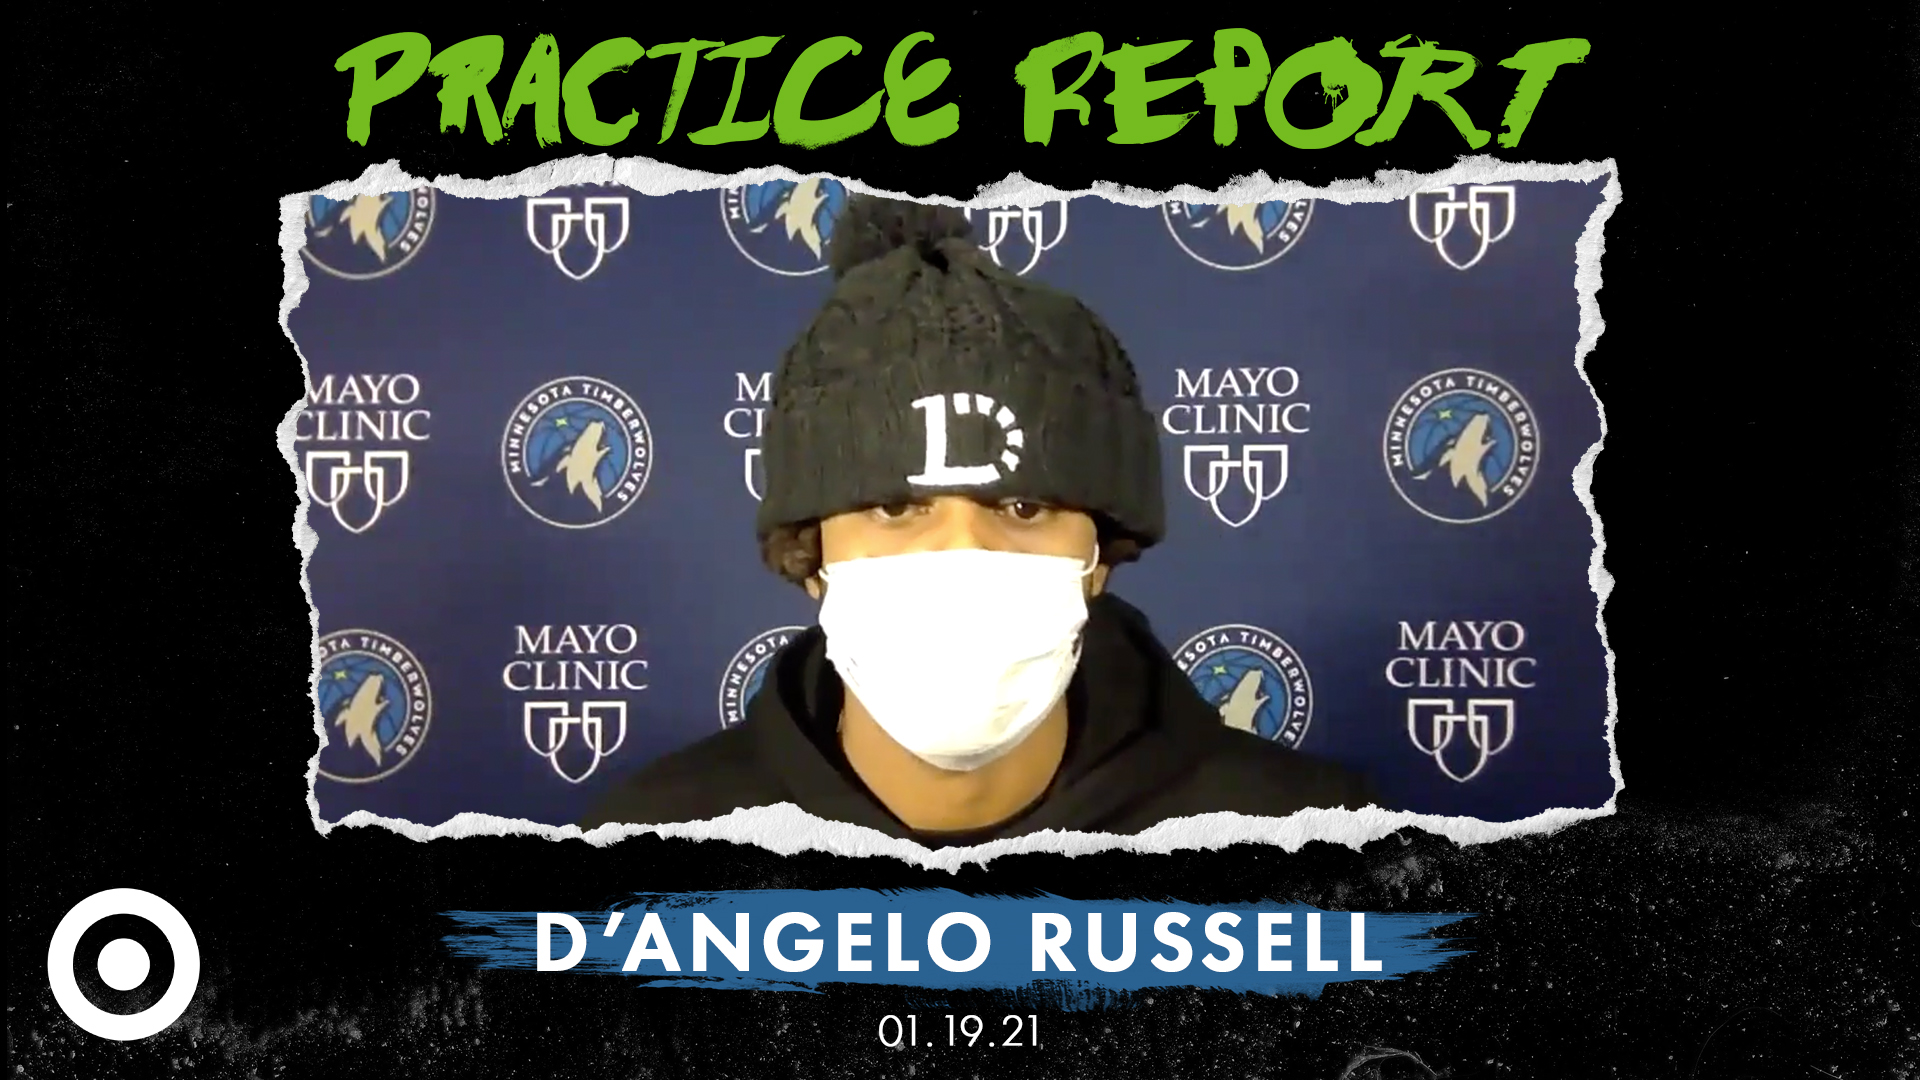 D'Angelo Russell Practice Report - January 19, 2021